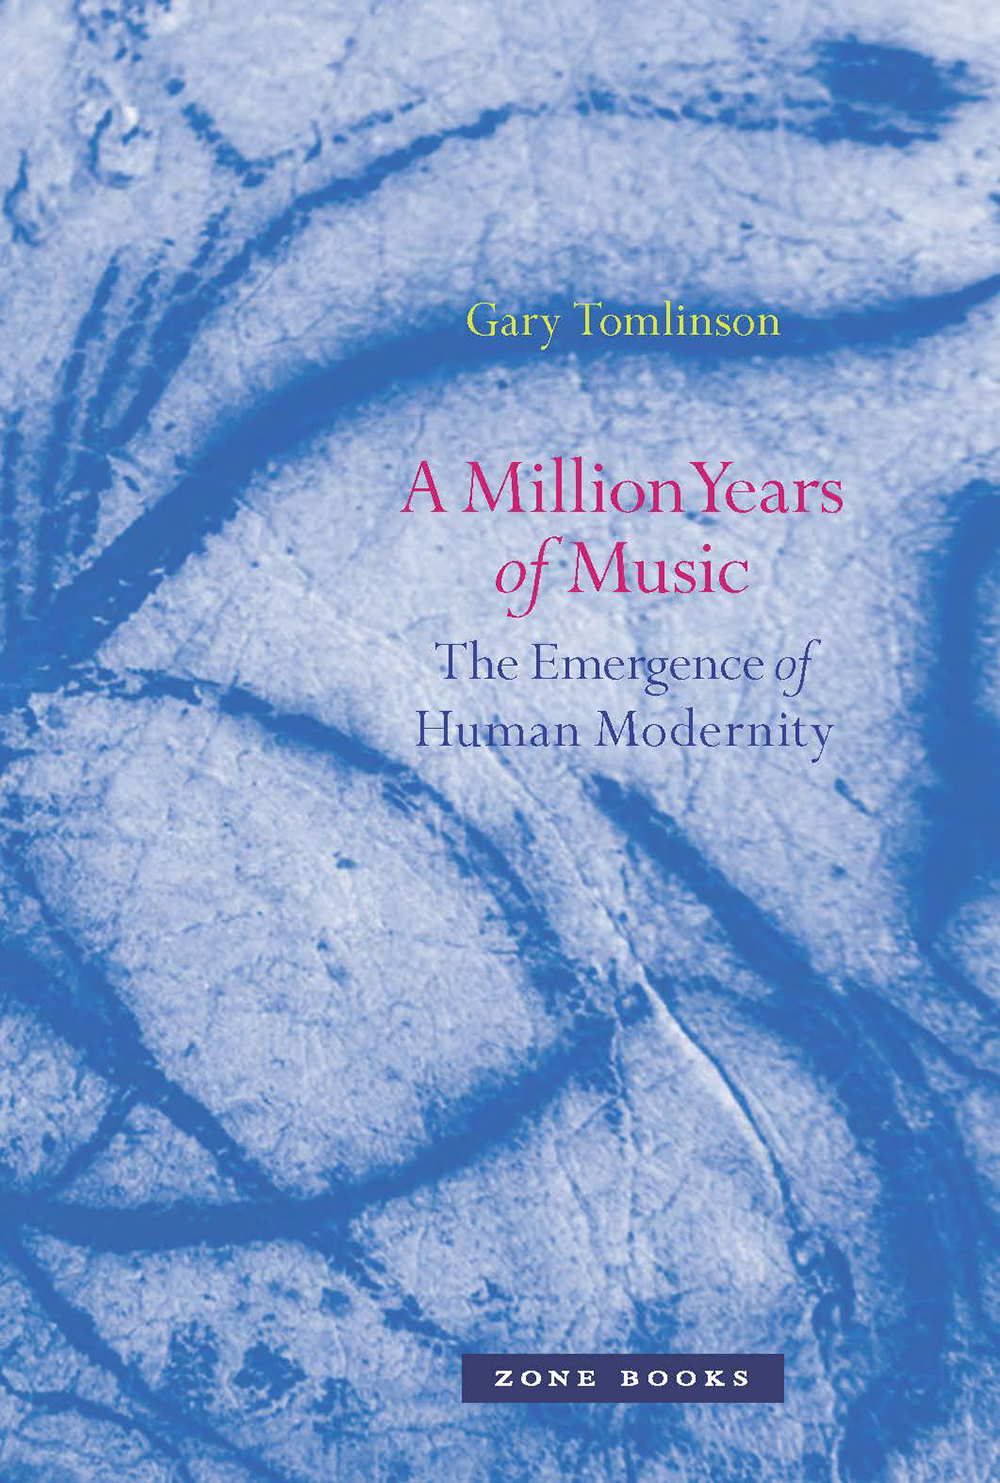 """A Million Years of Music: The Emergence of Human Modernity"" by Gary Tomlinson."